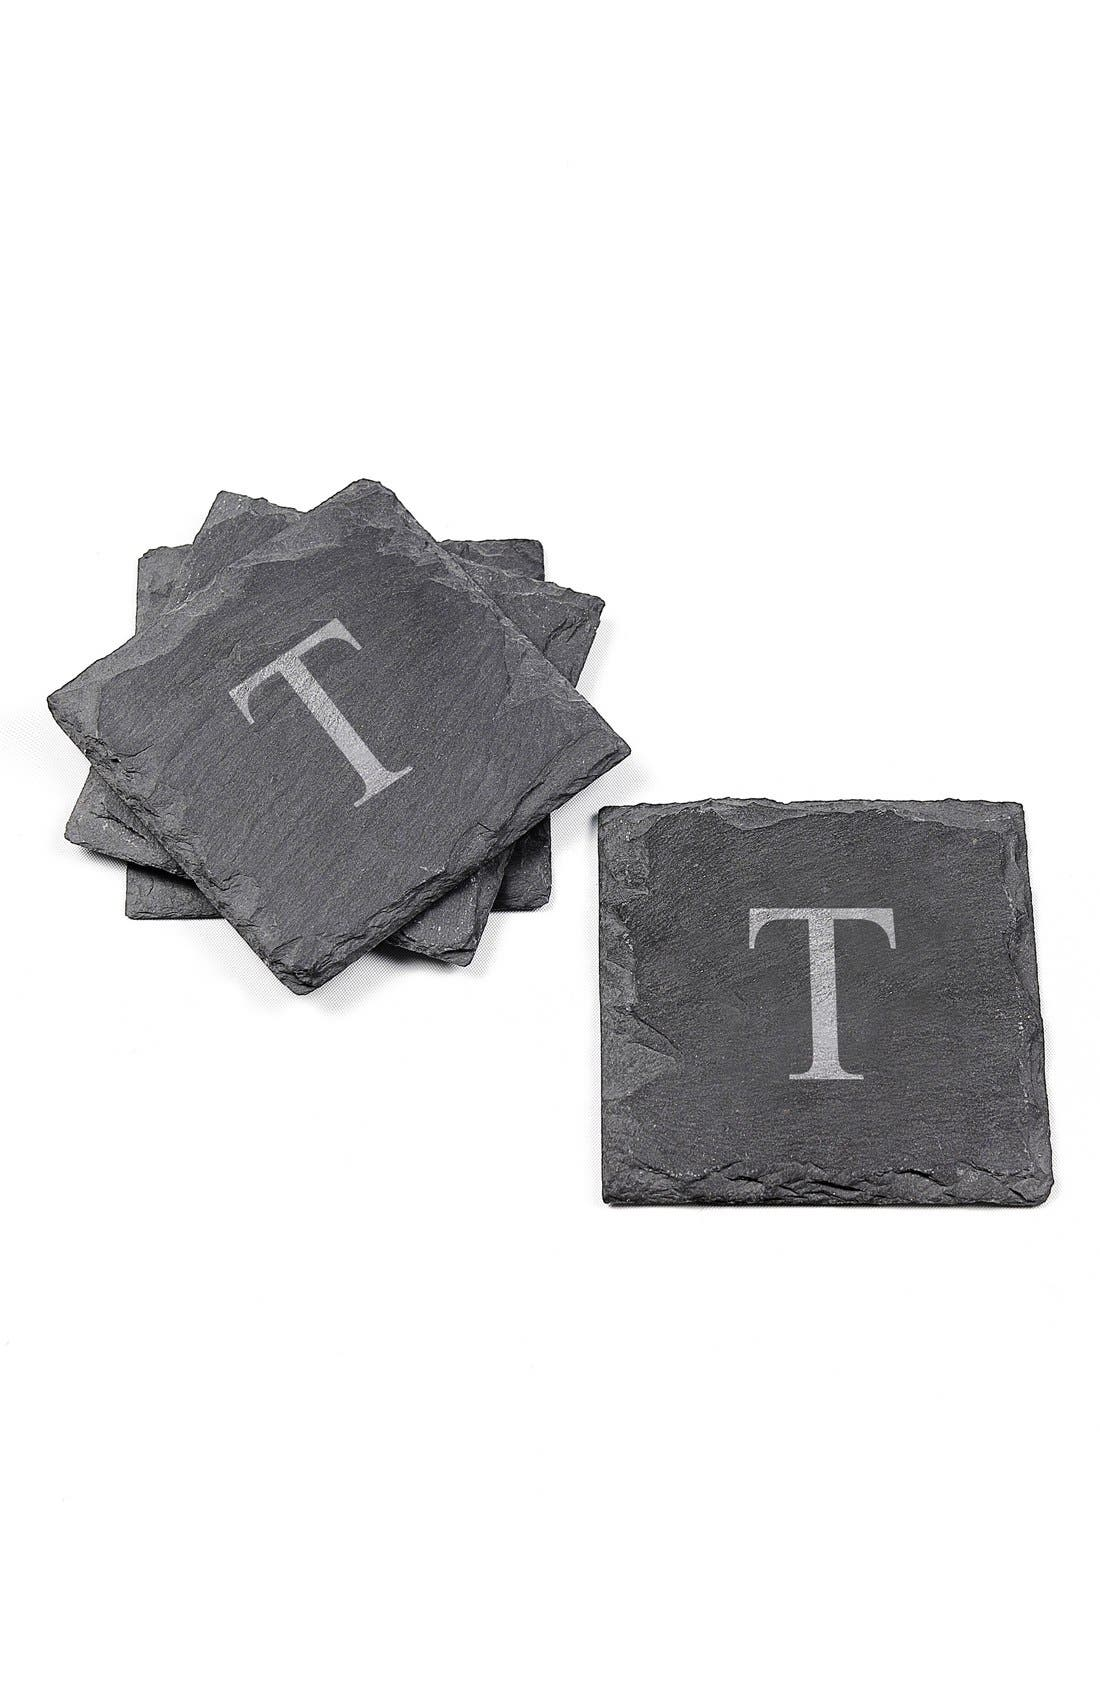 Main Image - Cathy's Concepts Monogram Slate Coasters (Set of 4)